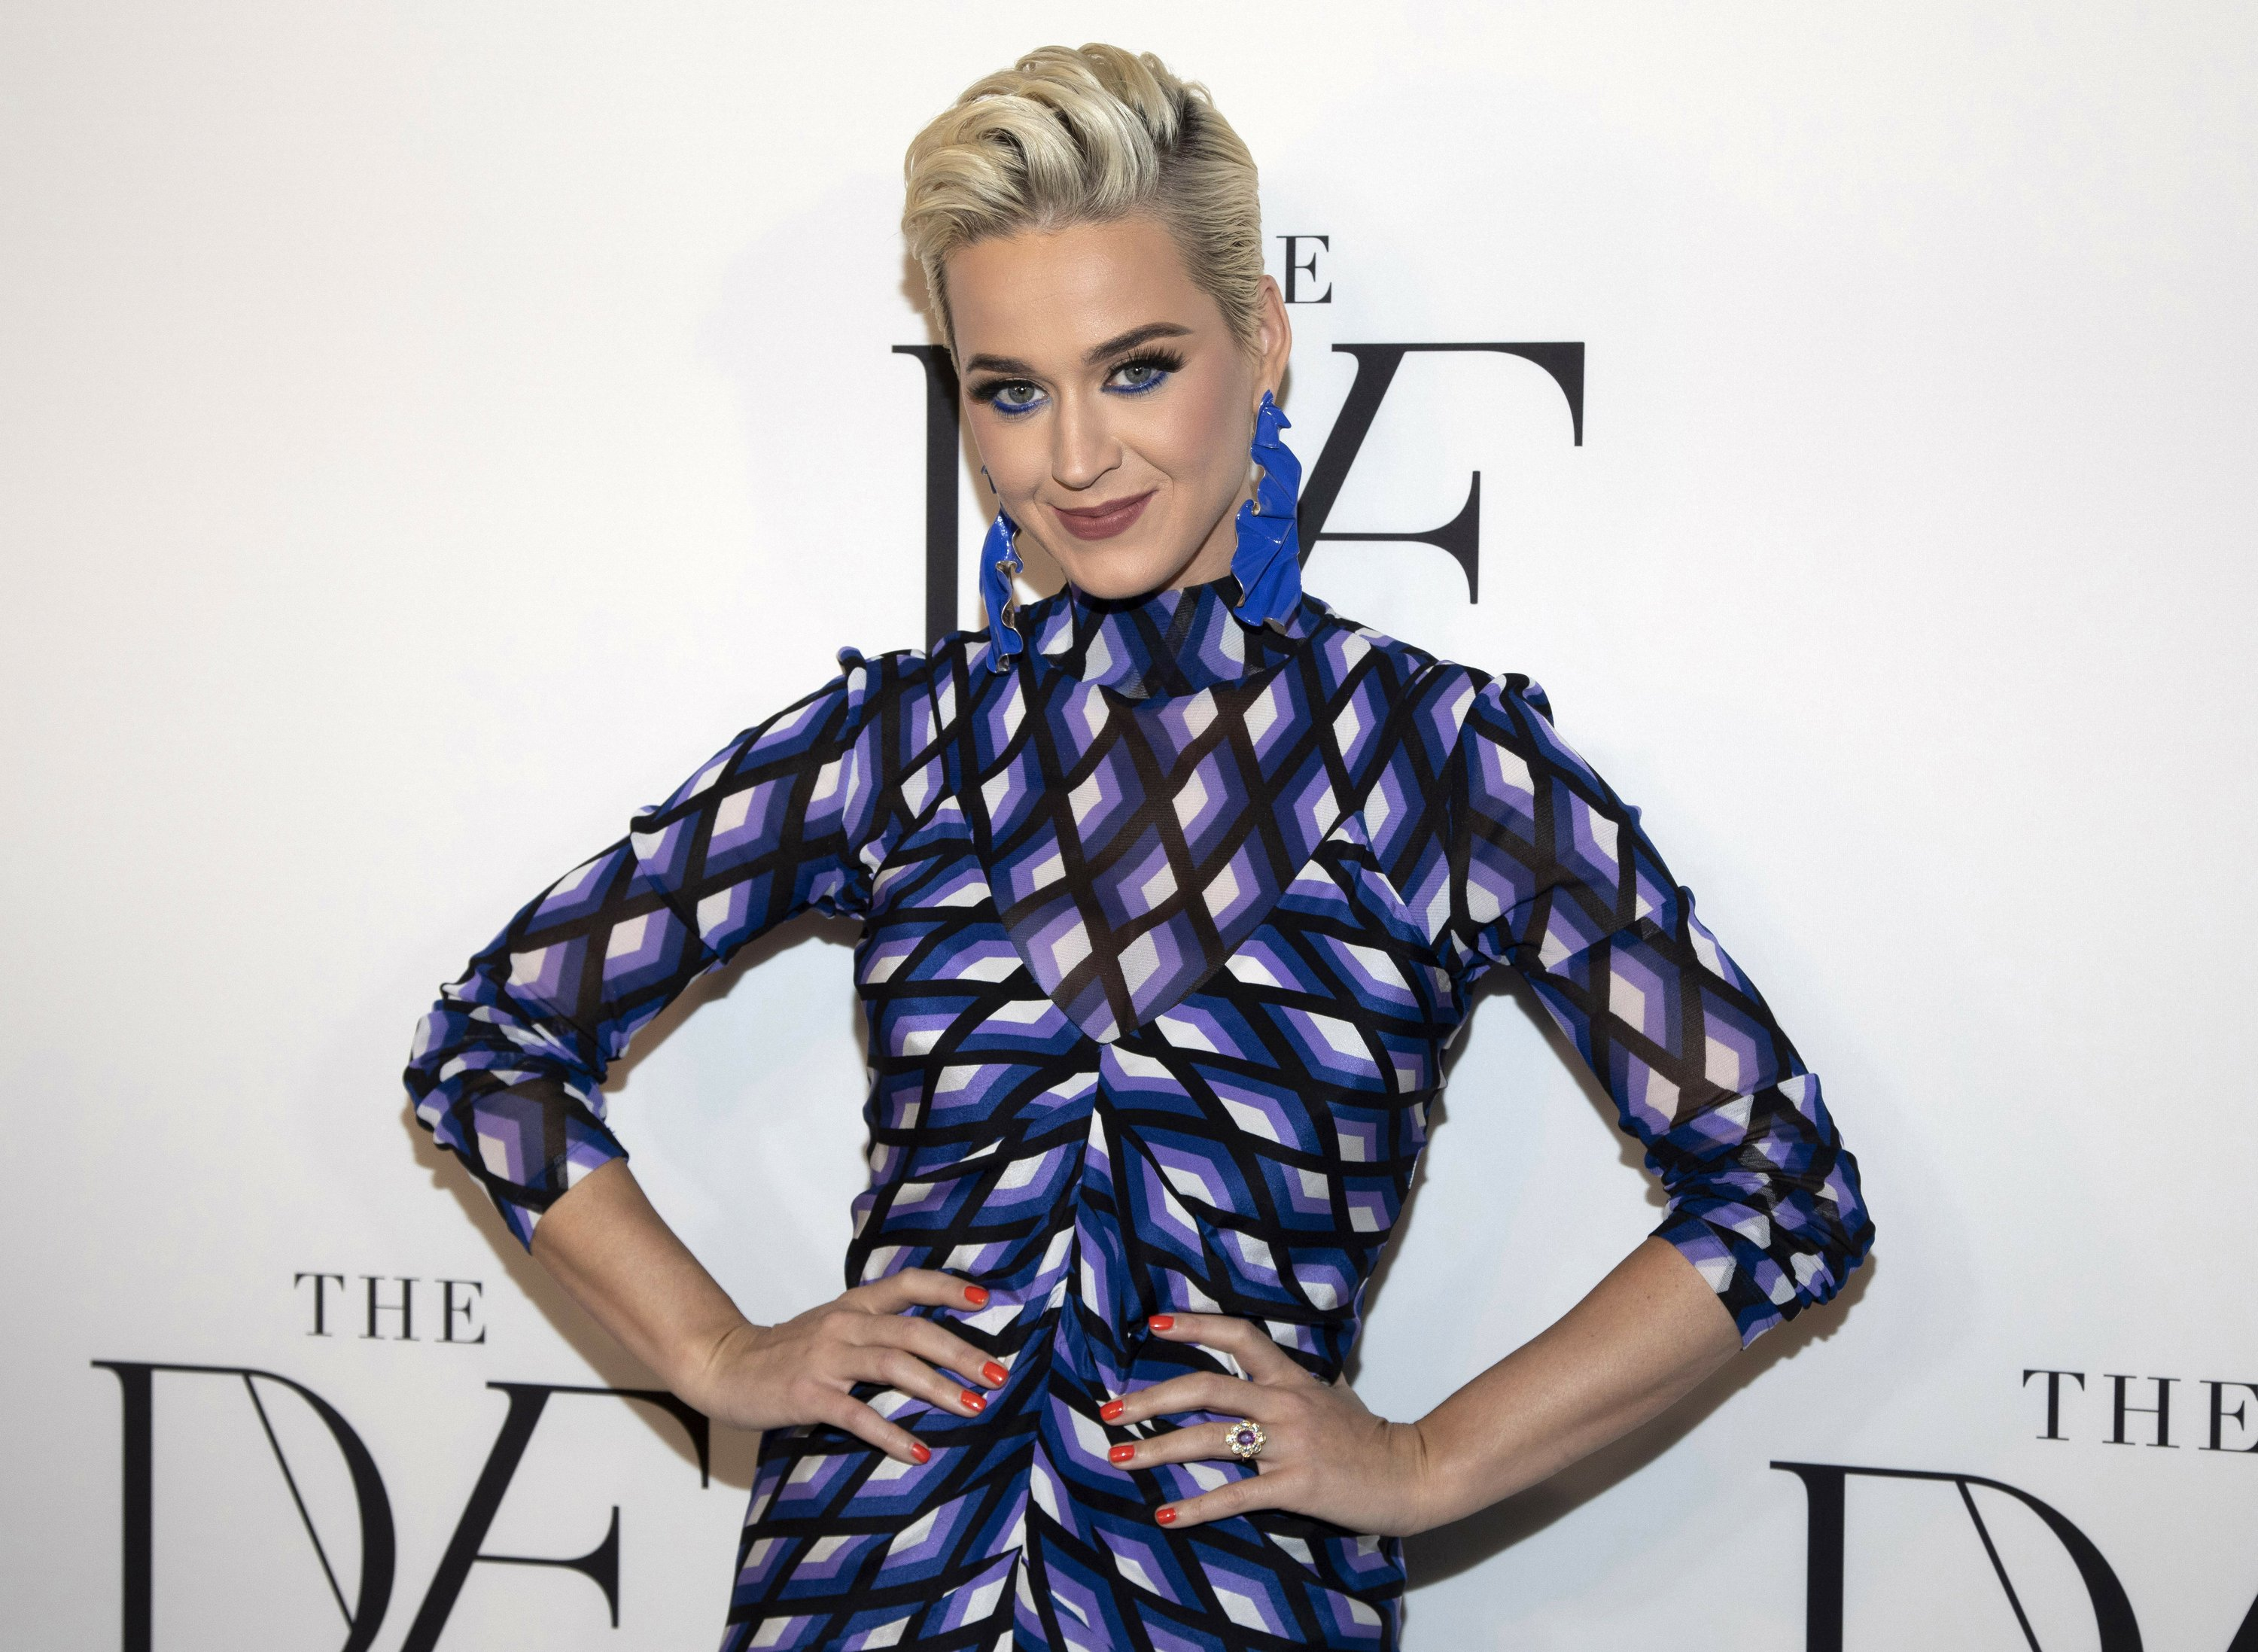 The Latest: Jury tells Katy Perry, others to pay $2.78M